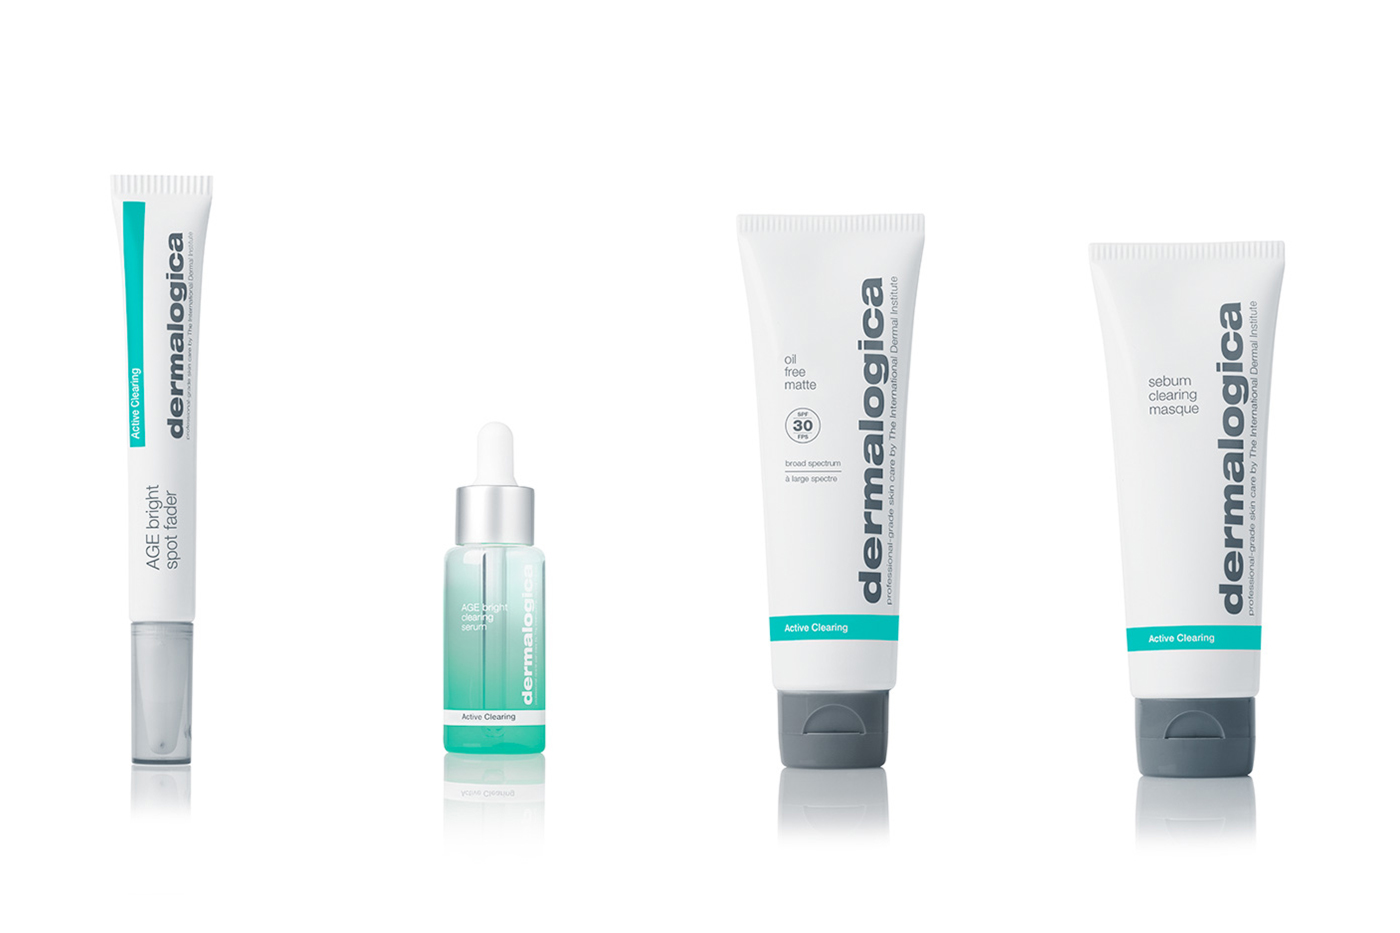 Dermalogica presents 2-in-1 solution for acne and aging